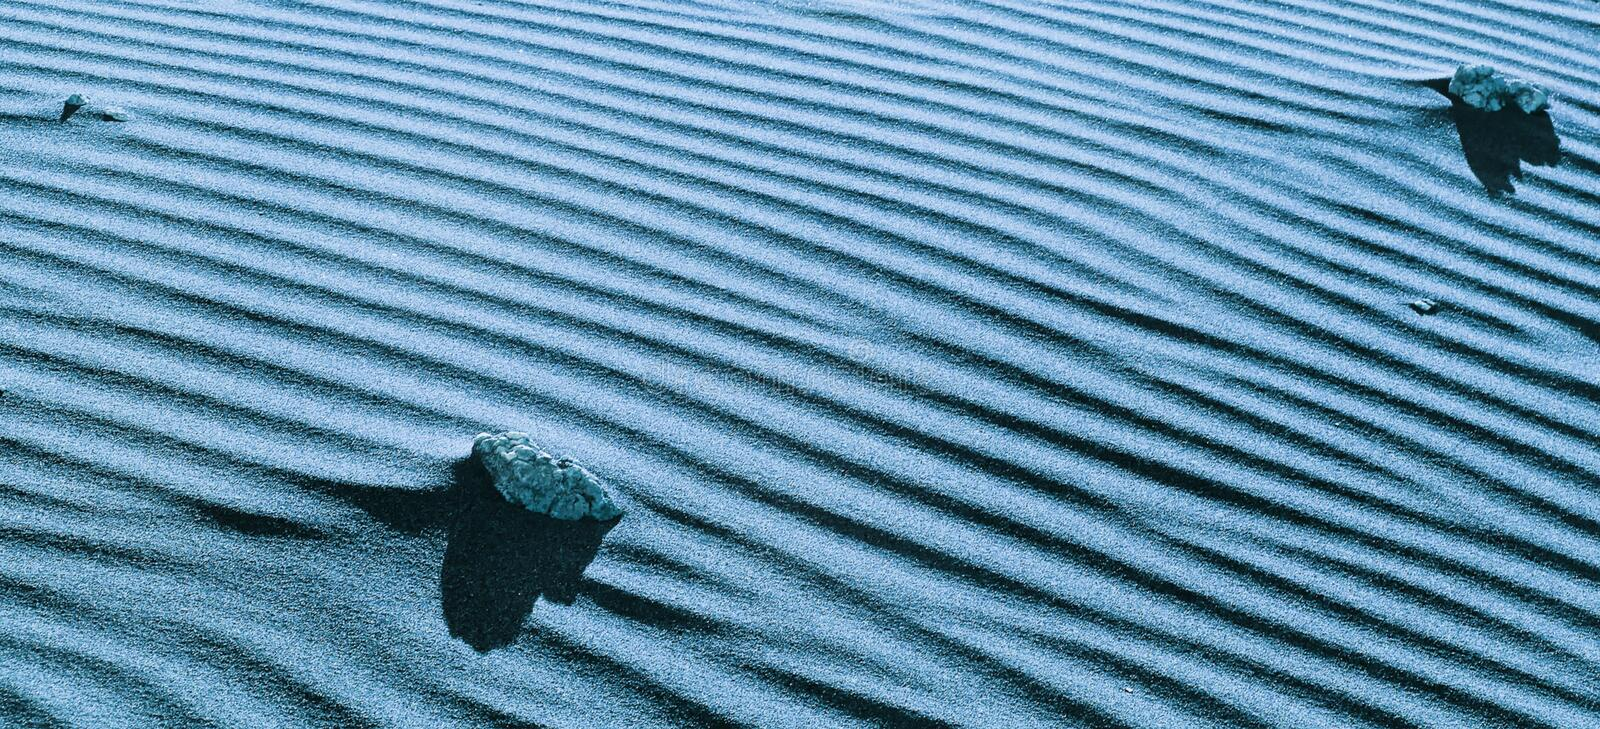 Beautiful geometric pattern of sandy dune close up. Abstract natural desert landscape. Texture of sand. Toned panoramic desert background. Copy space for your royalty free stock photo